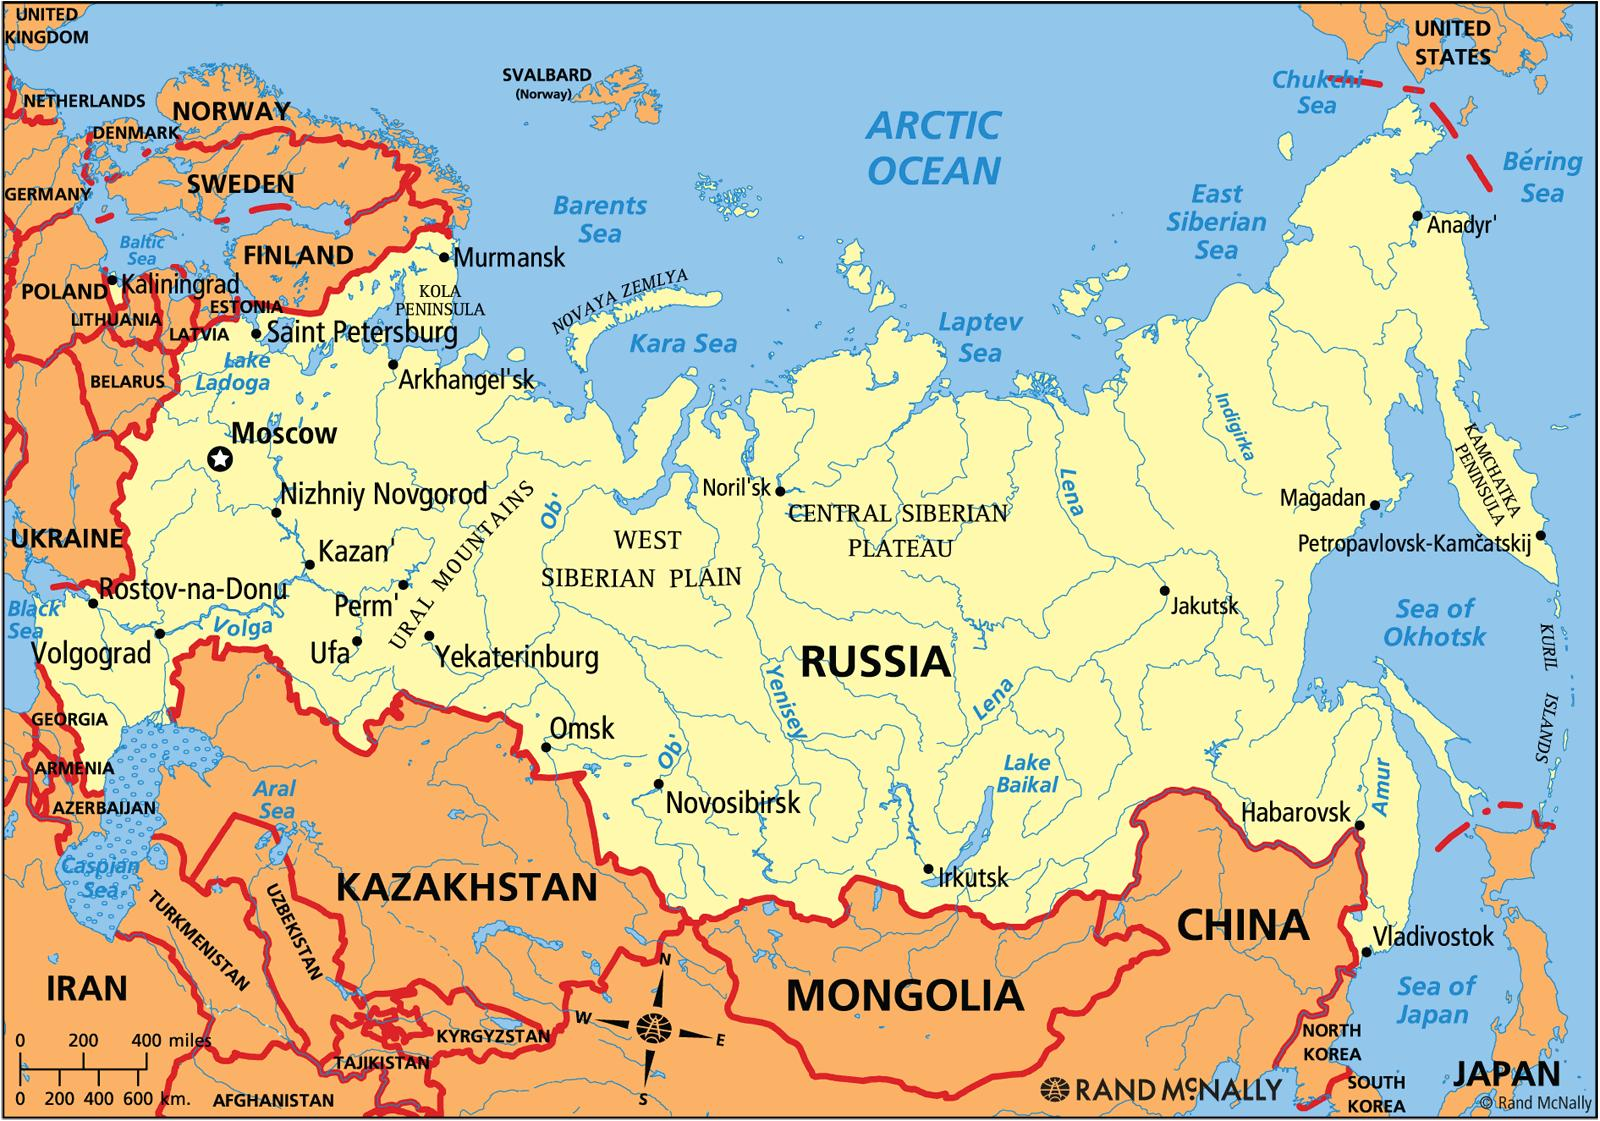 political map of cuba with Gjeldende Kart Over Russland on The American Nations Today 420259872 in addition Georgias David Attacks The Russian Goliath And Lives To Tell The Tale in addition Irak Y Sus Riquezas Los Anos De Colonia further Cuban Map further Gjeldende Kart Over Russland.